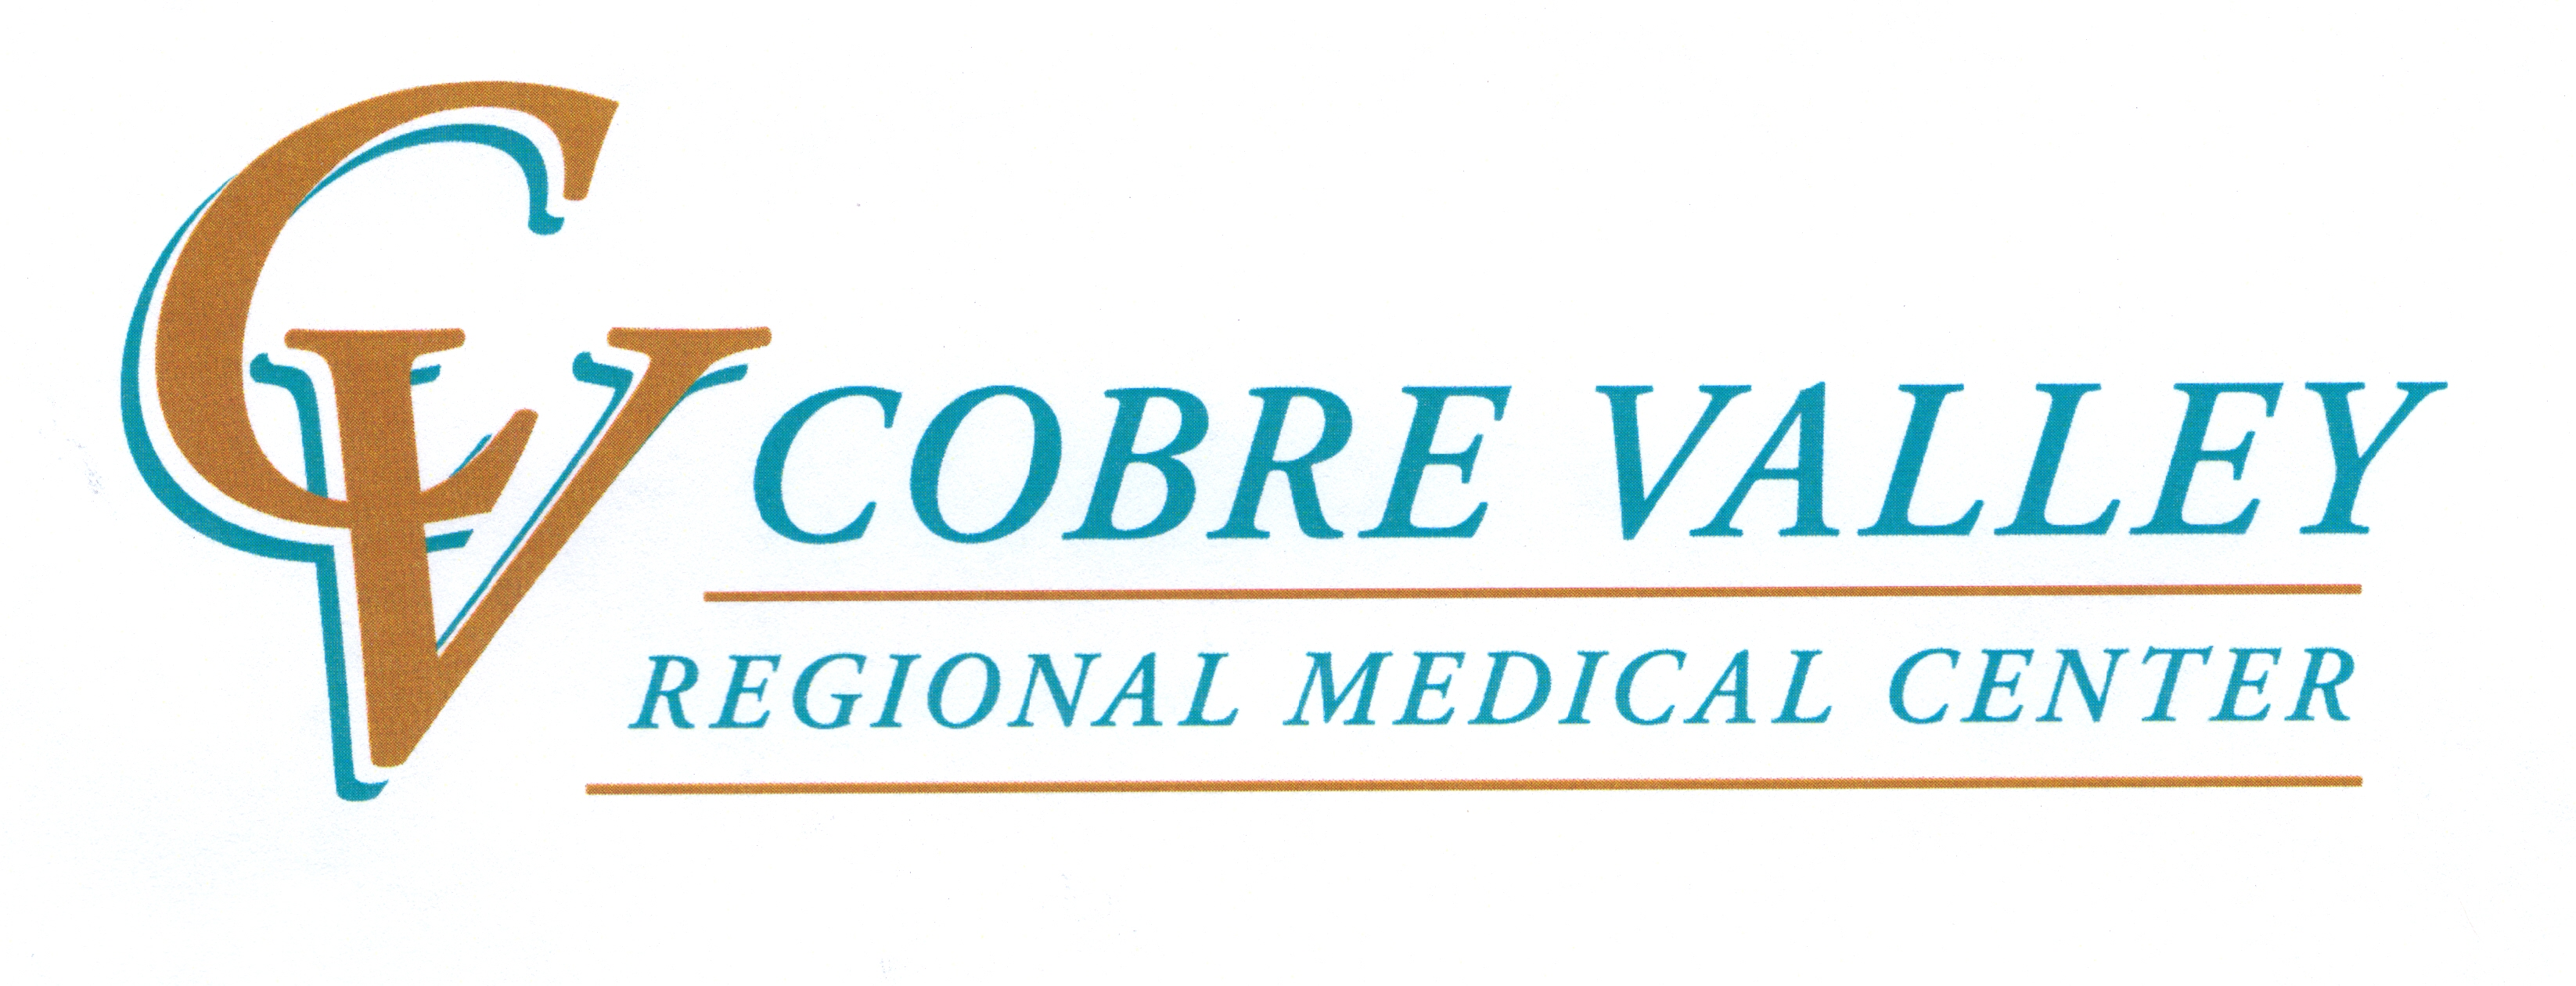 Cobre Valley Regional Medical Center